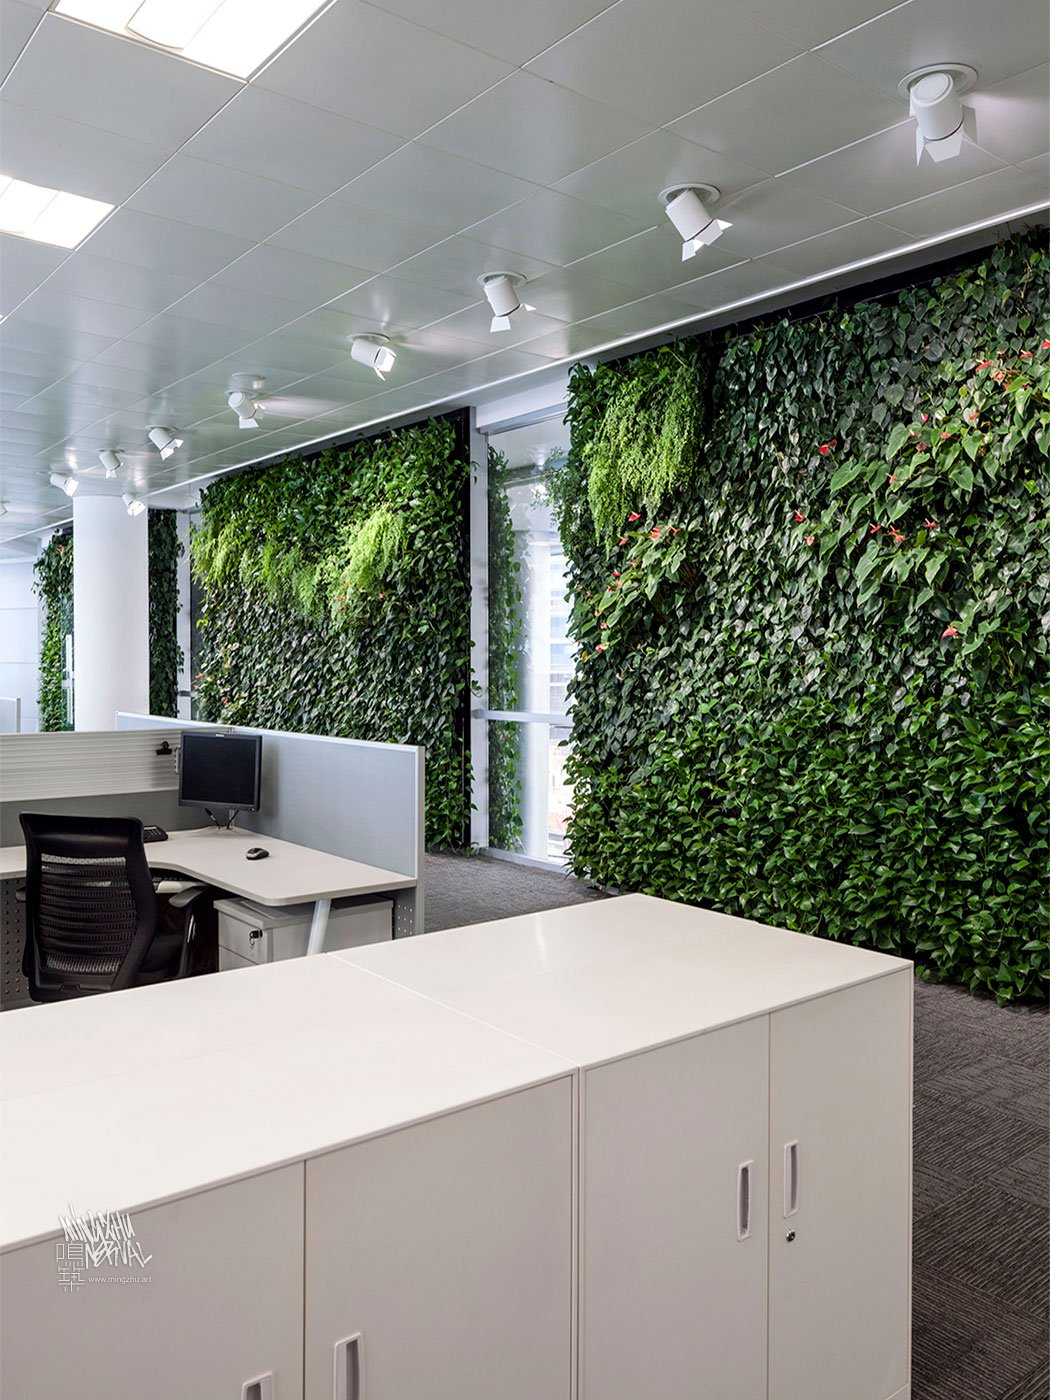 Mingzhu Nerval vertical living wall experts created a healthy nature workspace at ICBC in Shanghai, 2012